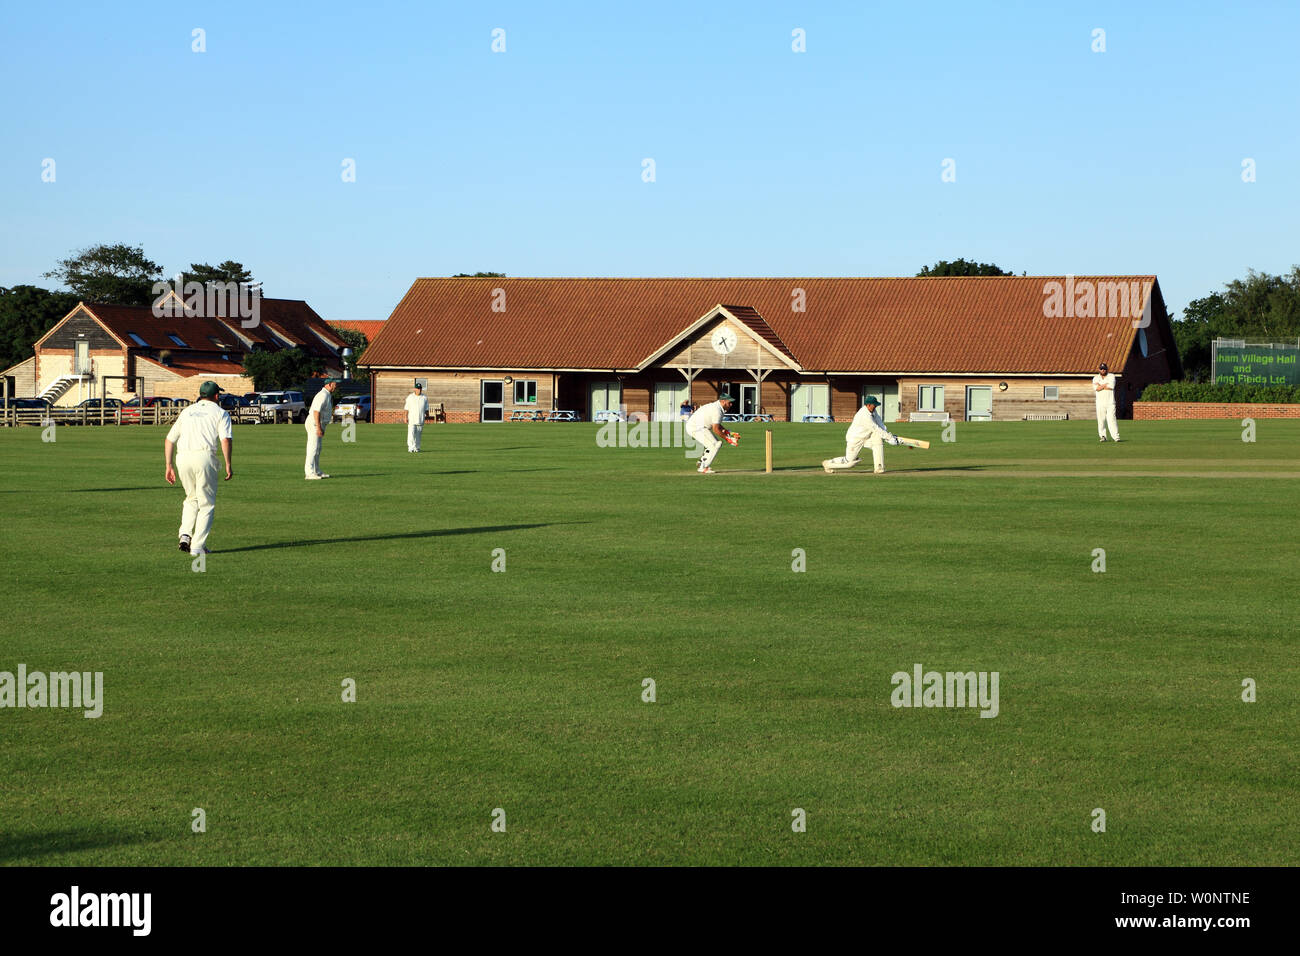 Village Cricket, match, game, sport, Thornham, Norfolk, UK Stock Photo